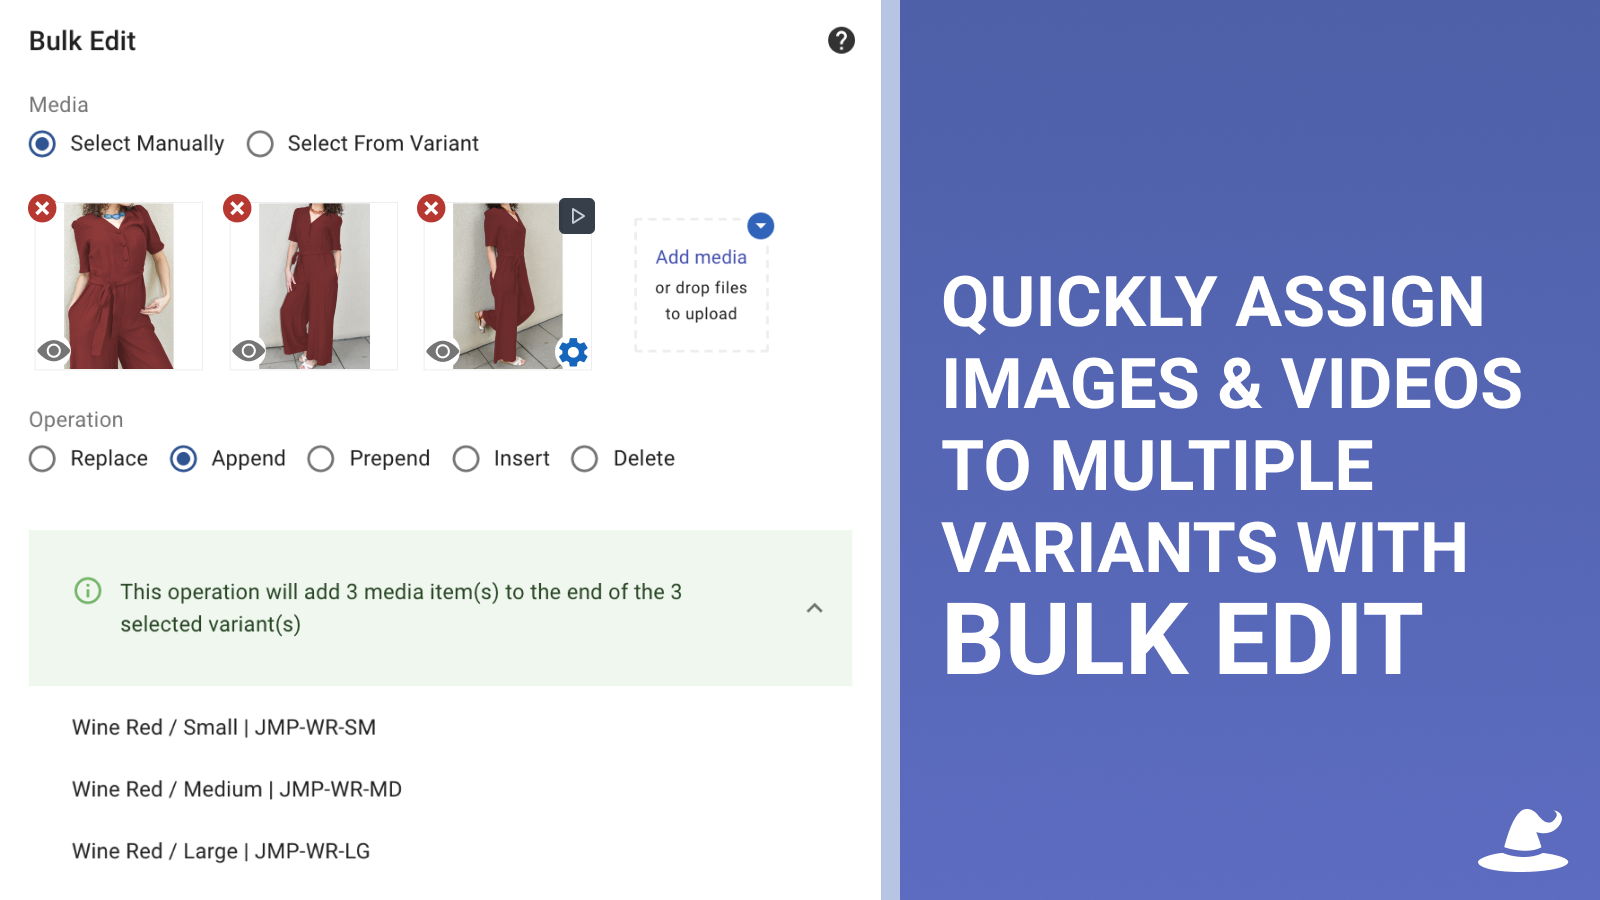 Quickly assign images to multiple variants with Bulk Edit